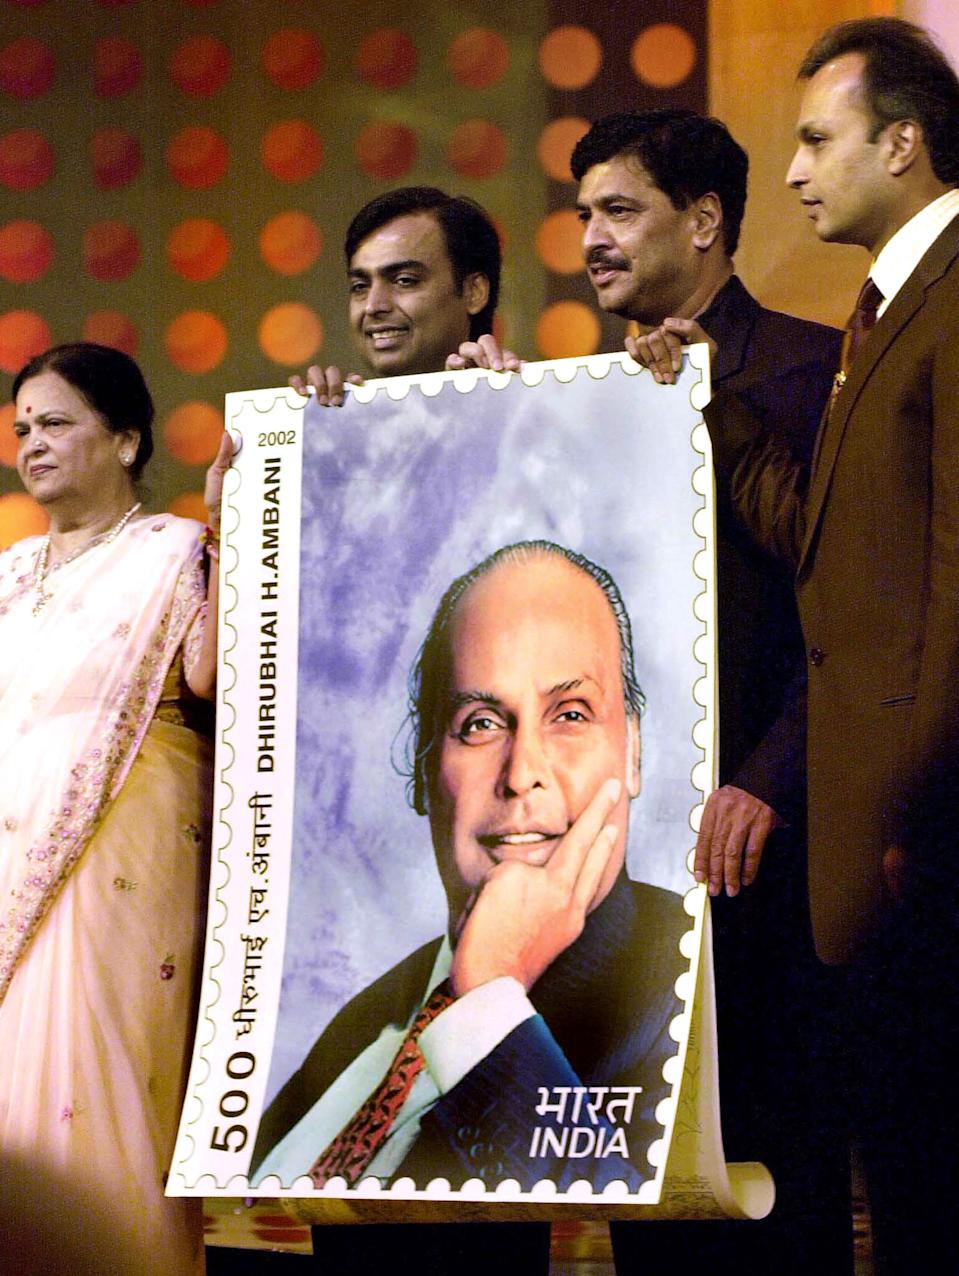 (from L to R) Kokilaben Ambani, Mukes Ambani, Indian Minister for Information and Technology Pramod Mahajan and Anil Ambani pose with a giant postage stamp depicting late founder of Reliance Industries Dhirubhai Ambani in Bombay, 28 December 2002. The stamp was released on the occasion of Dhirubhai Ambani's birthday. AFP PHOTO / Sebastian D'SOUZA